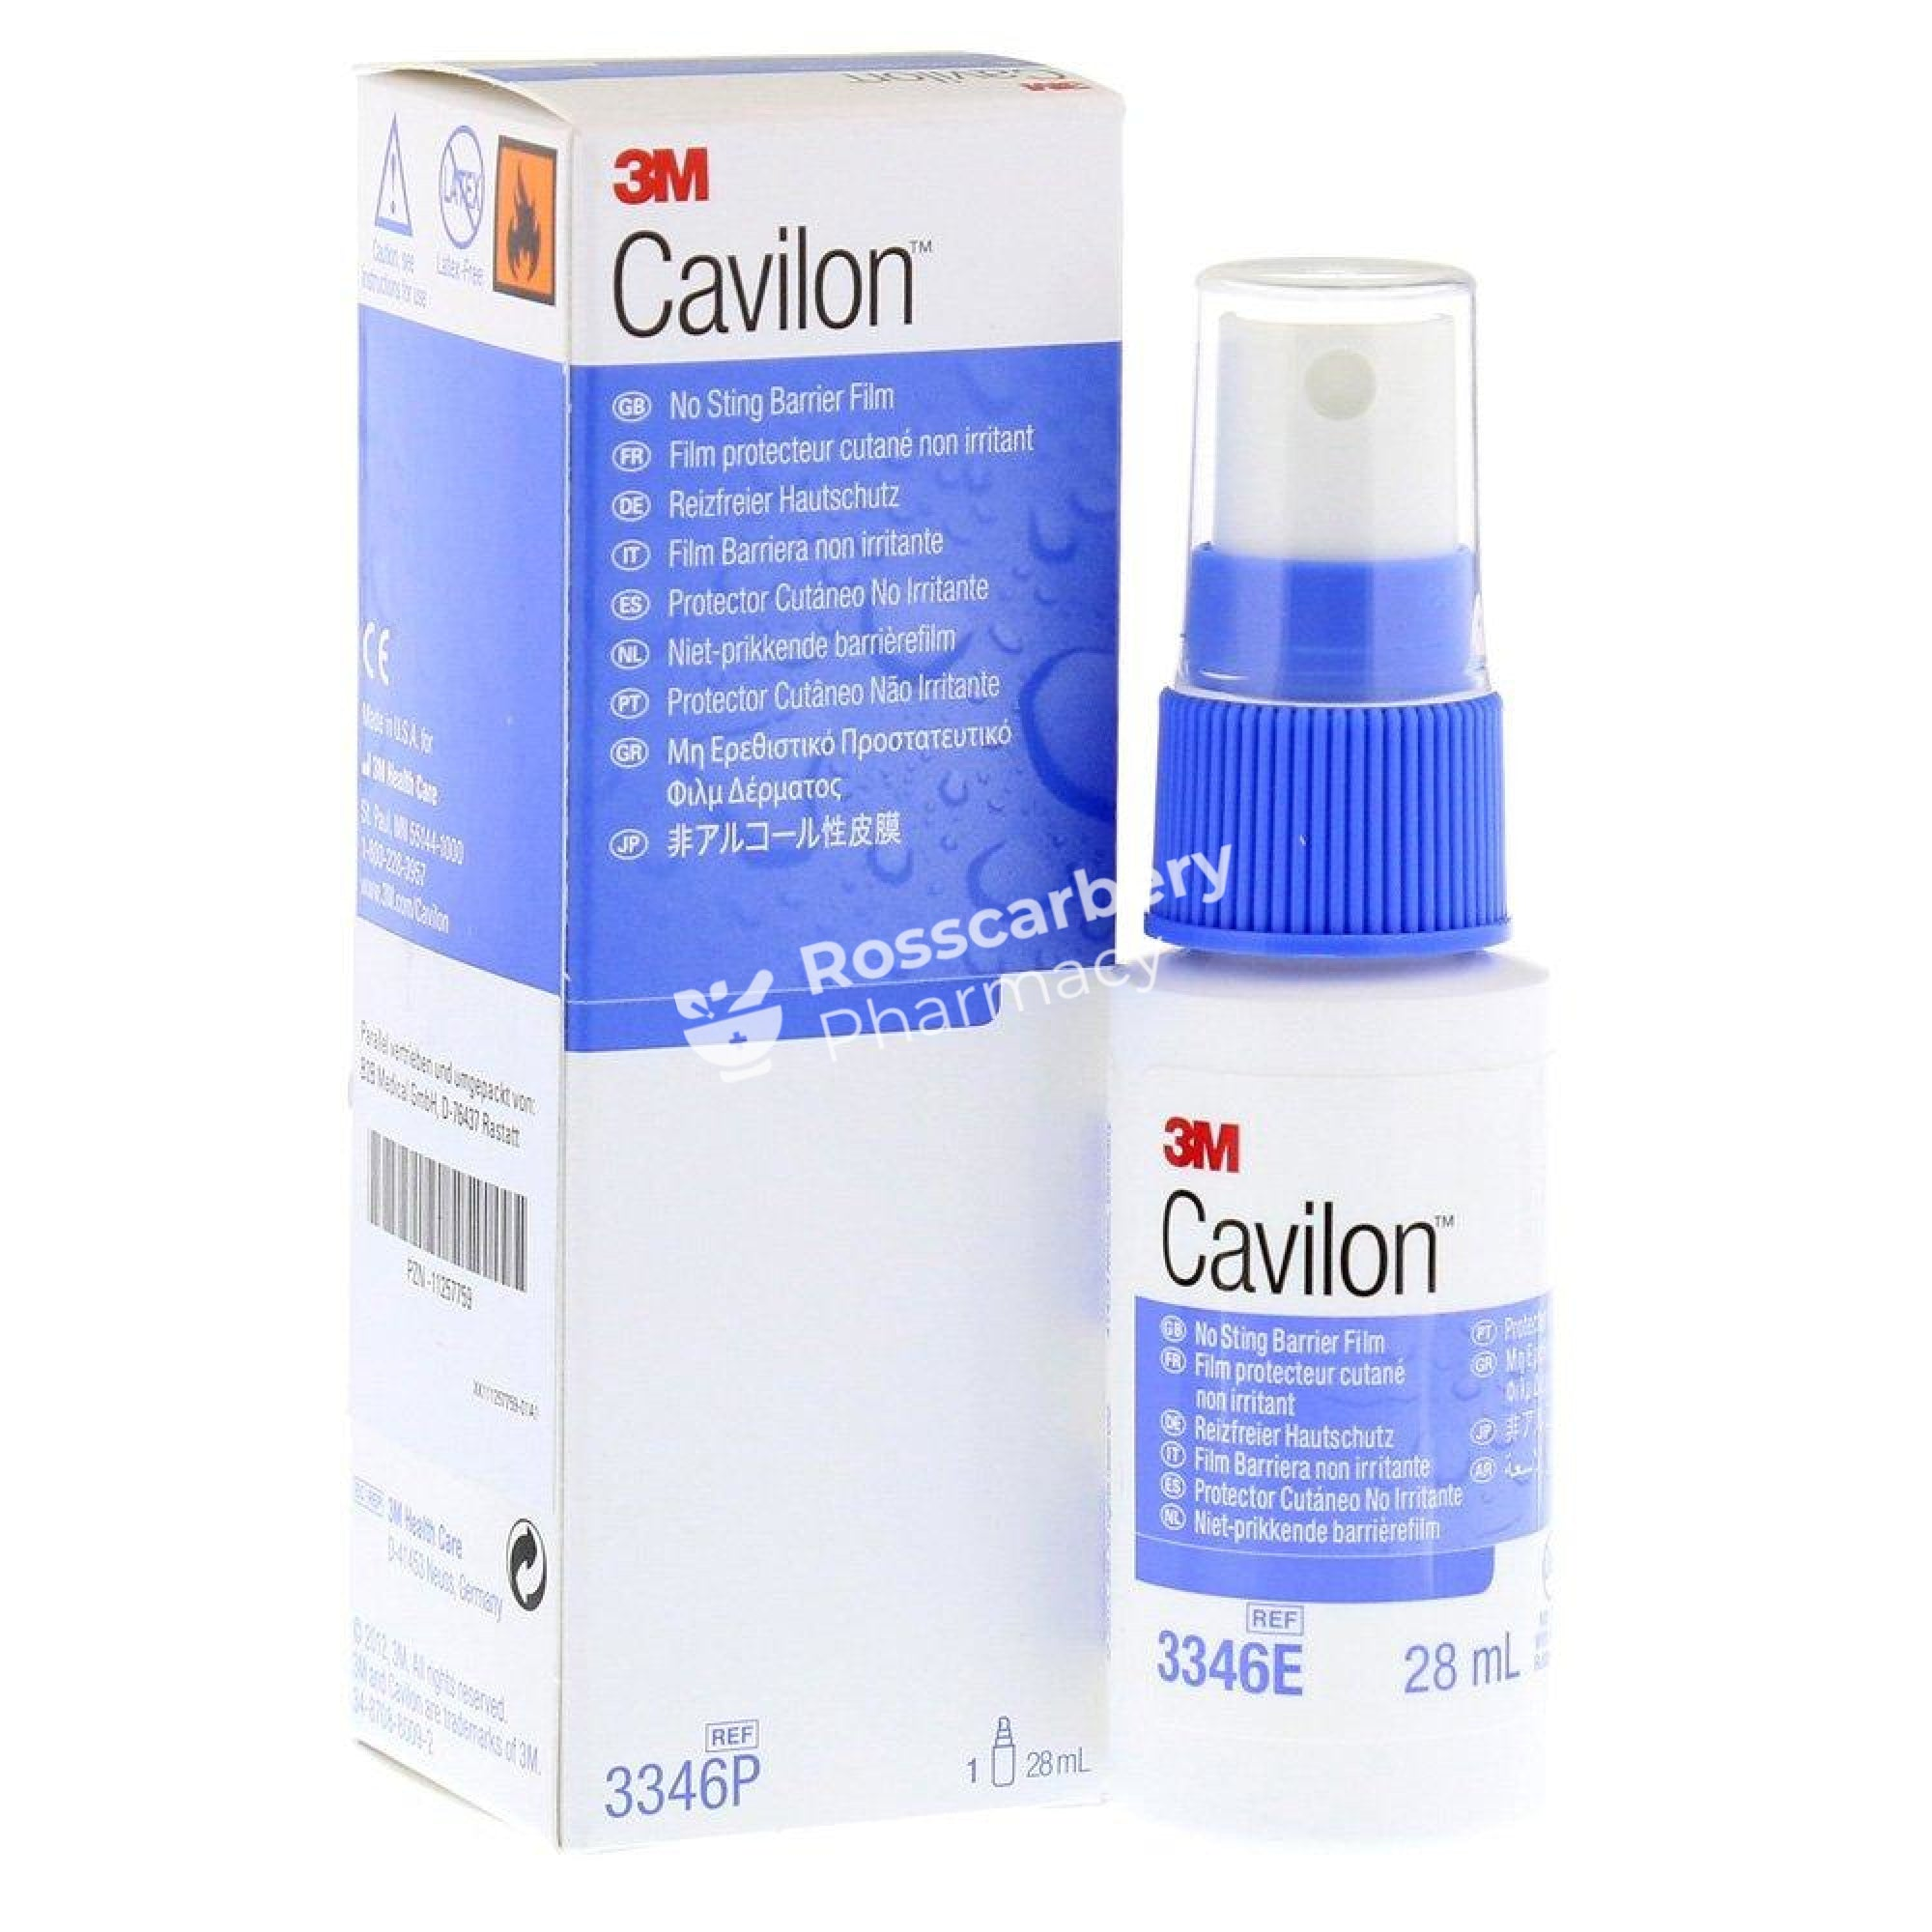 Cavilon No Sting Barrier Film Antiseptic & Wound Healing